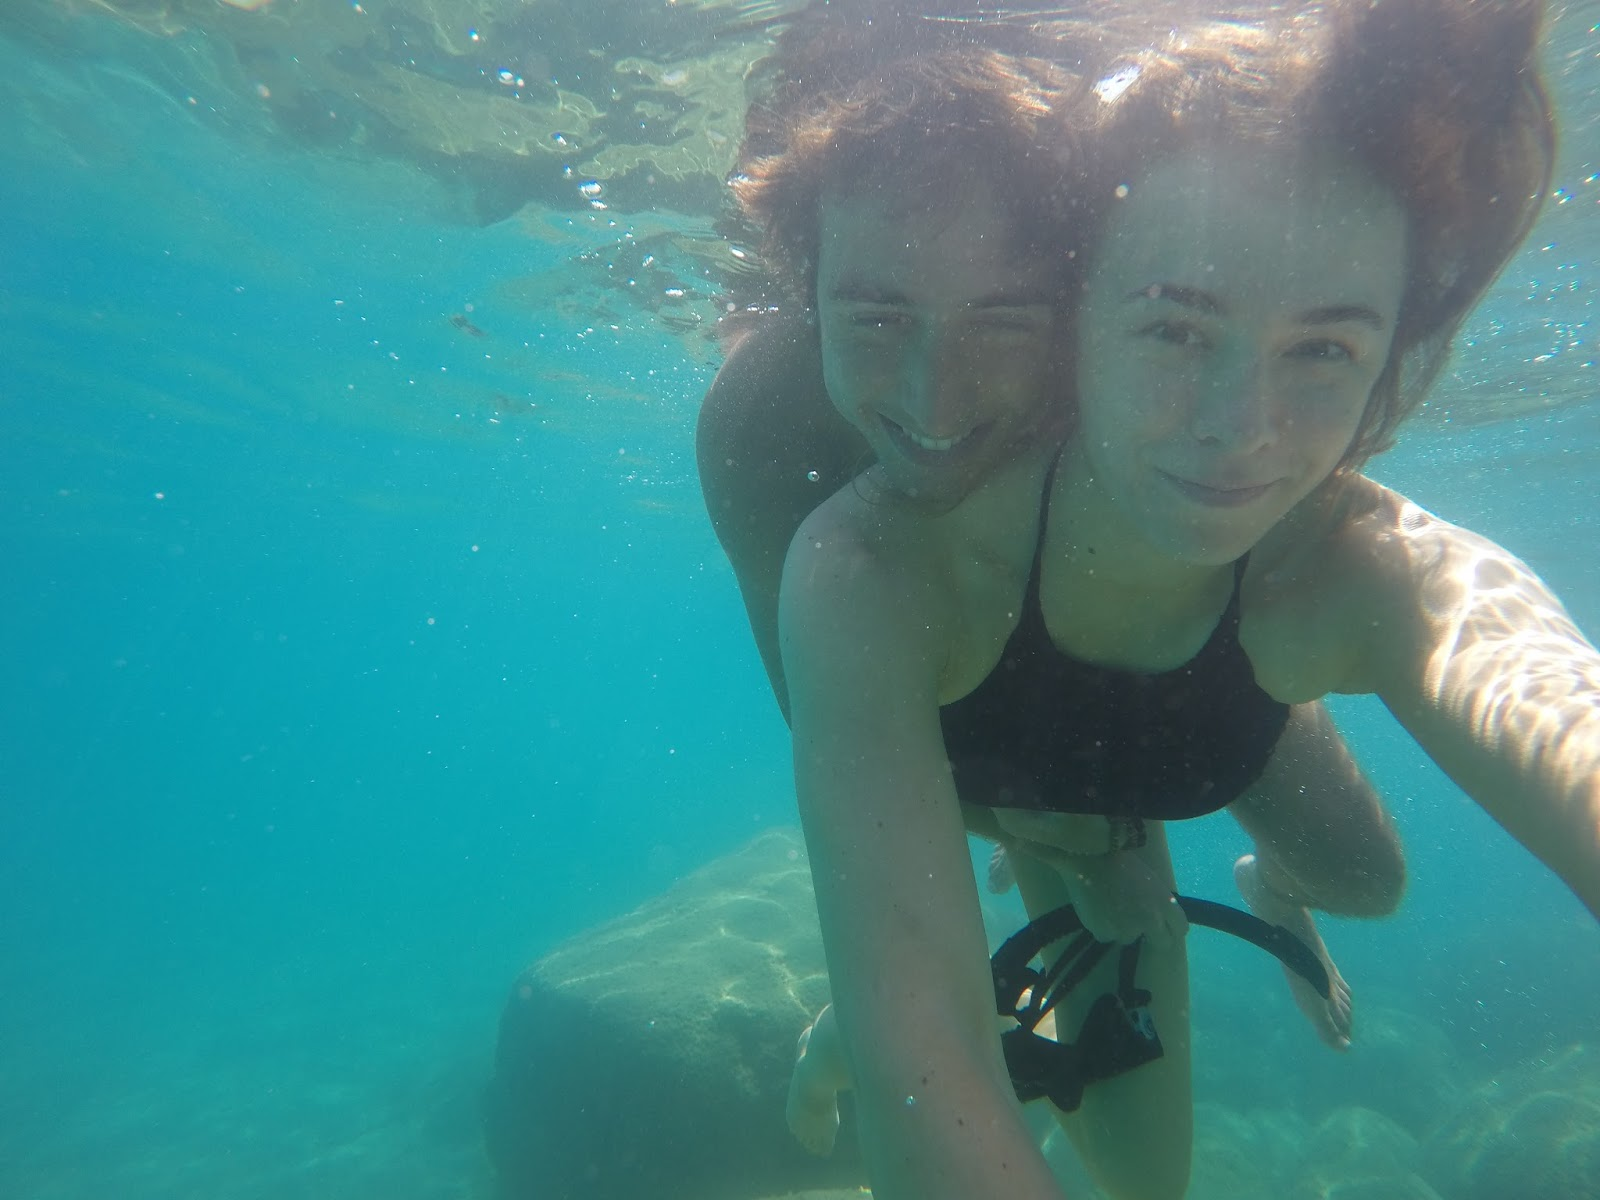 Italy, GoPro Hero 4, Under the water photos